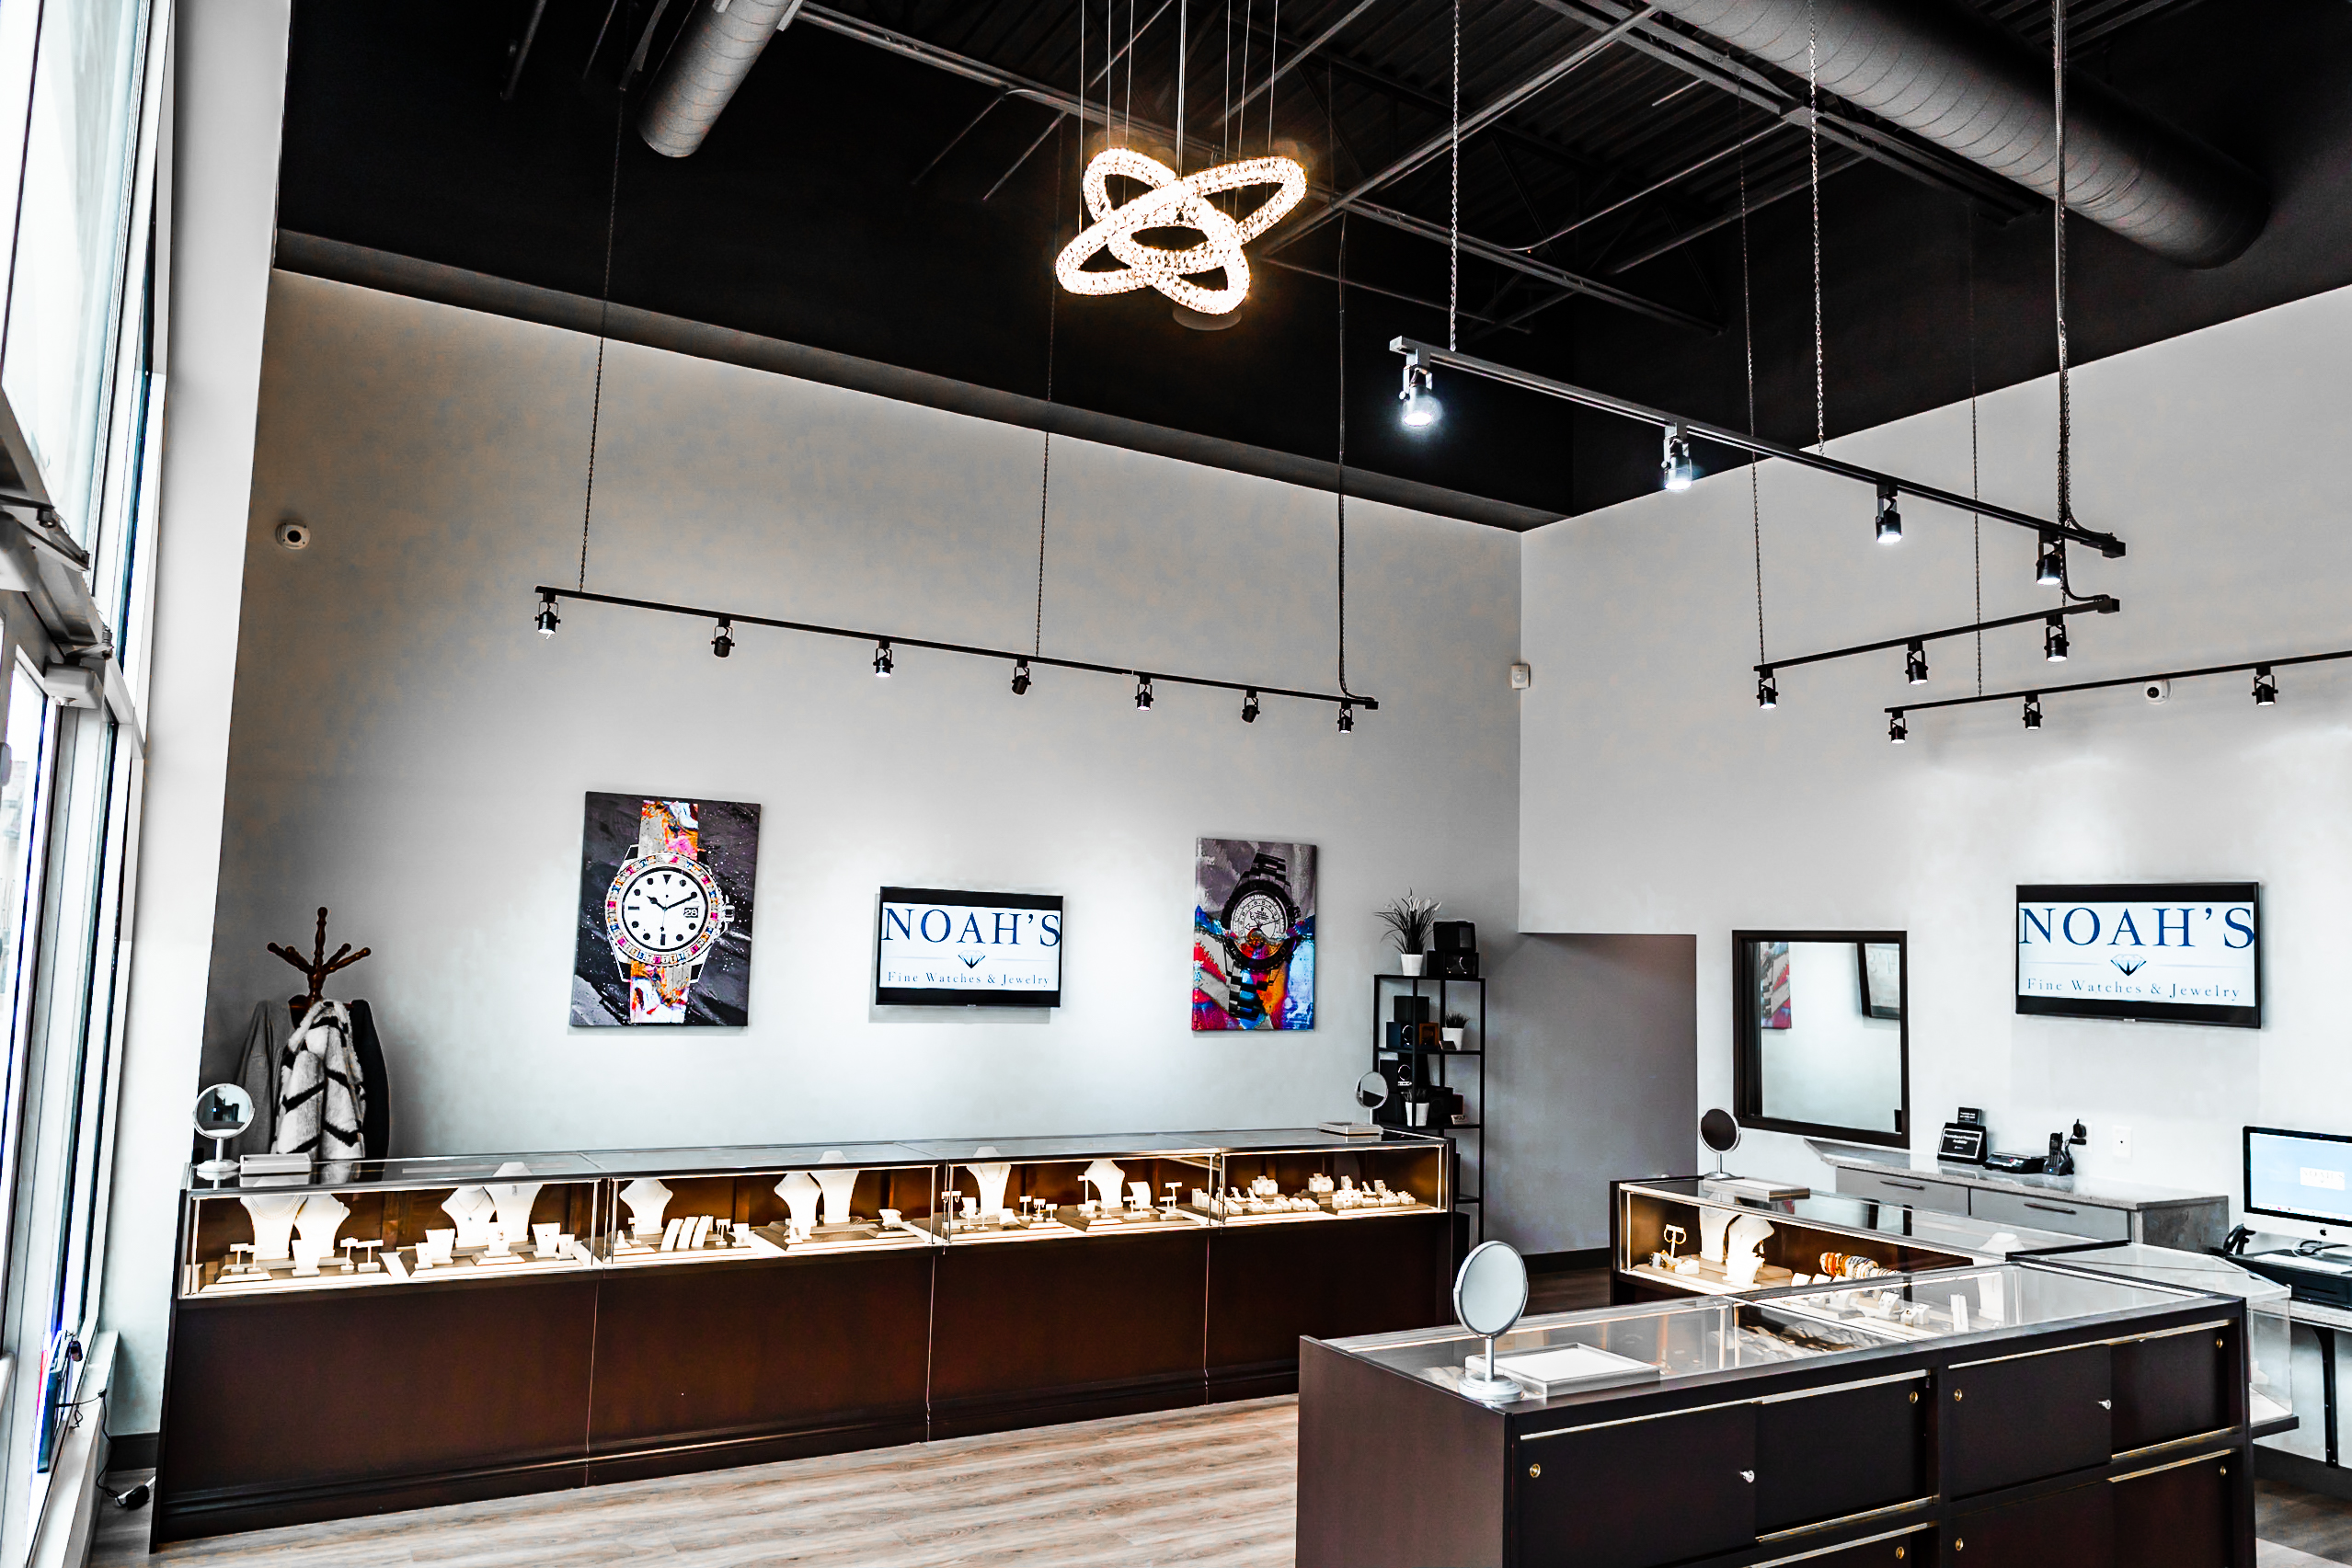 Image of interior of Noah's Fine Jewelry & Watches store